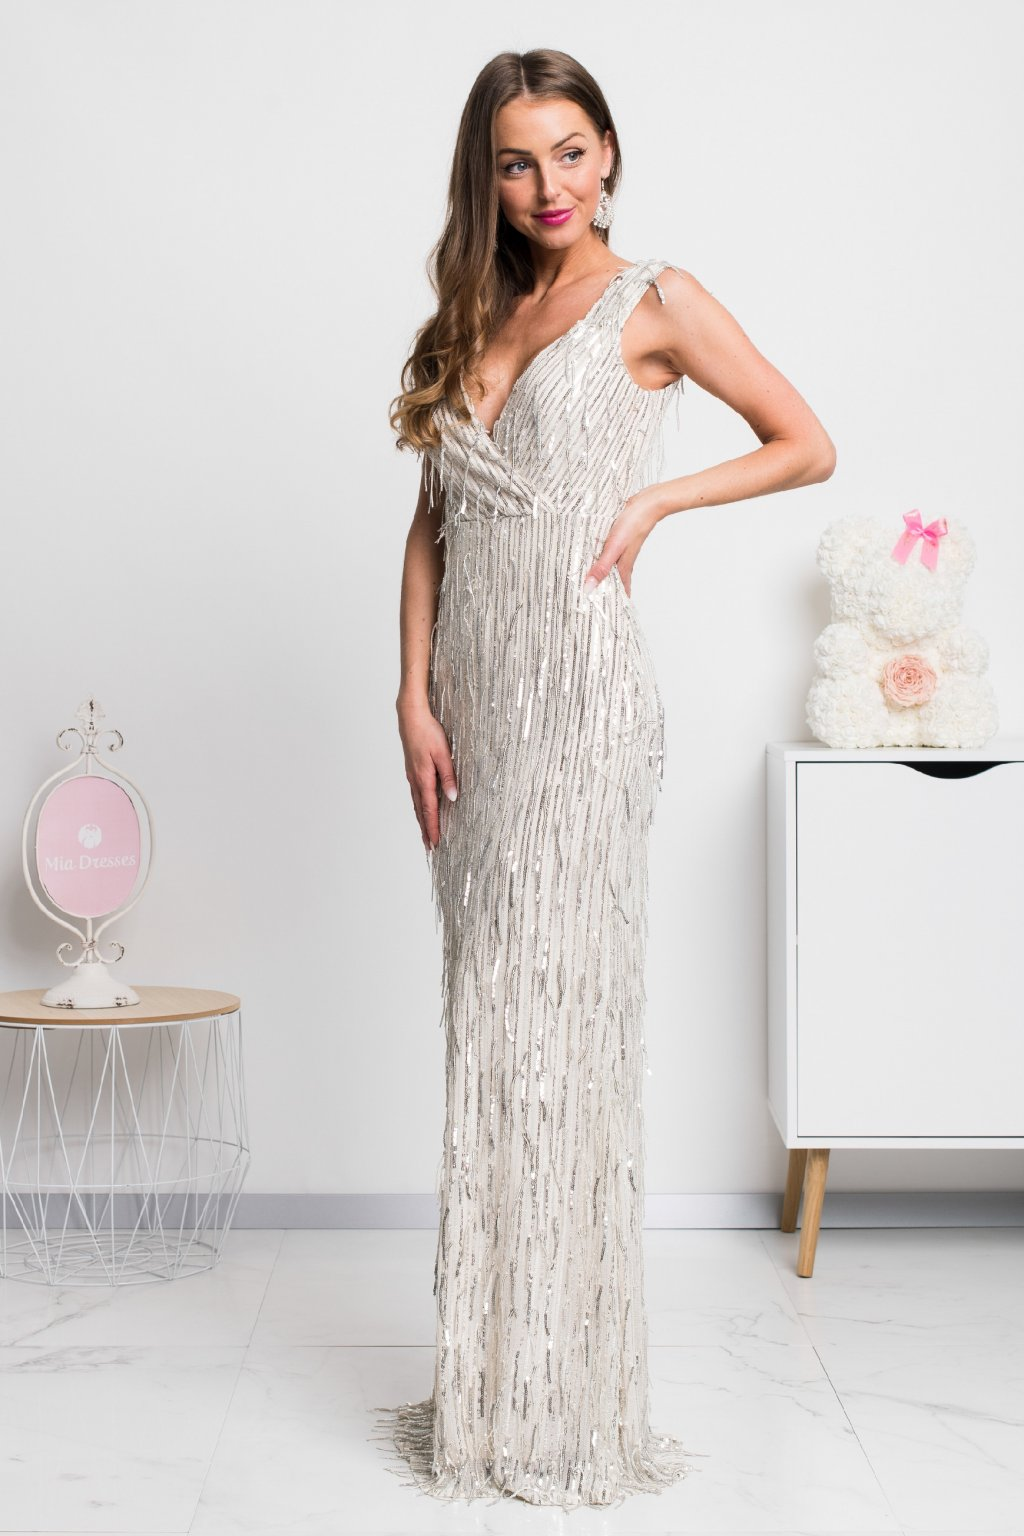 Ivory formal dress with silver tassels